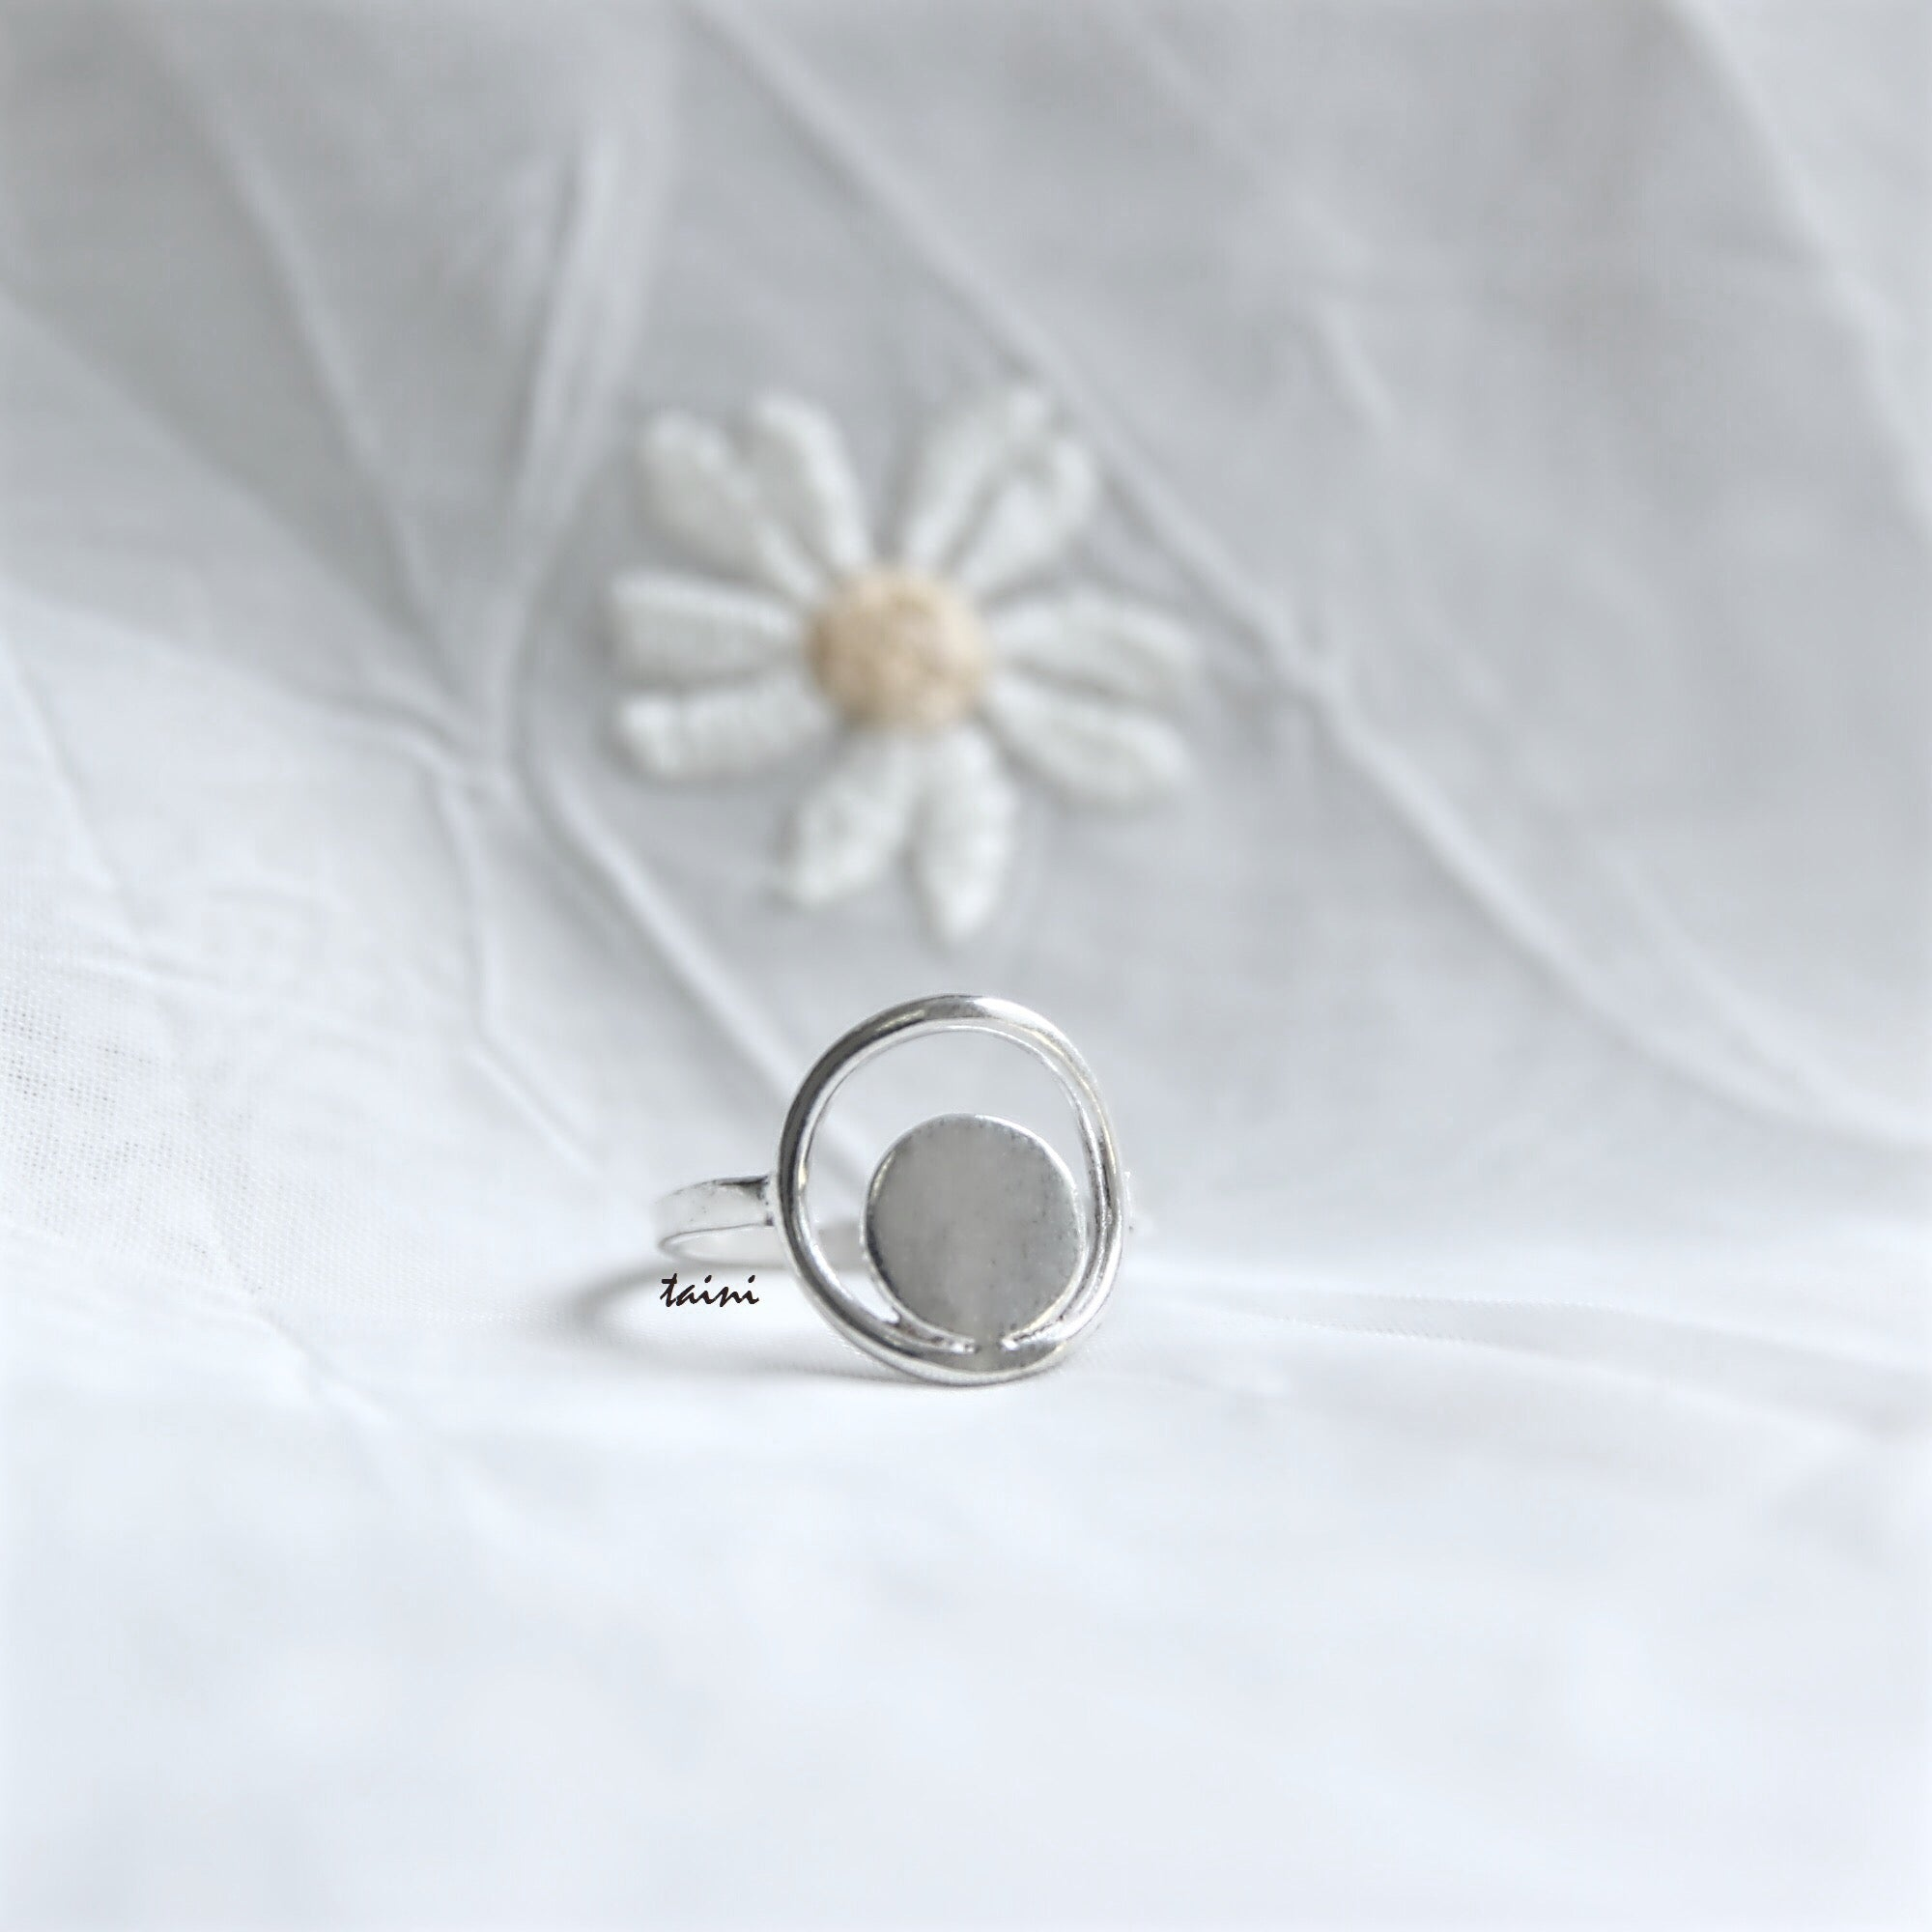 TAINI SILVER - MIX ROUND RING